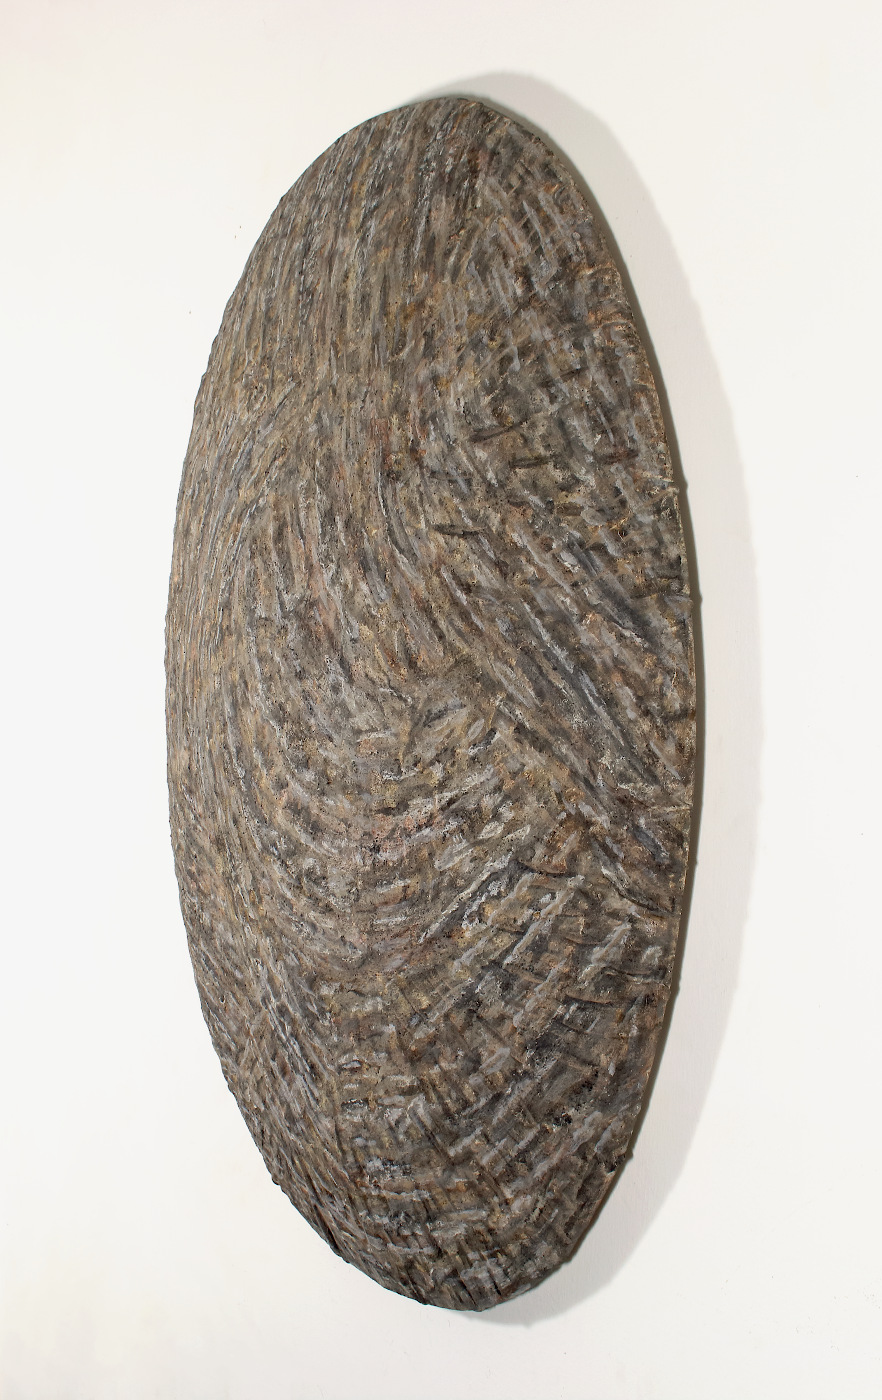 Side view of monosema - 93 x 70 x 10 cm  - clay, ground, ash on shaped canvas - 2019